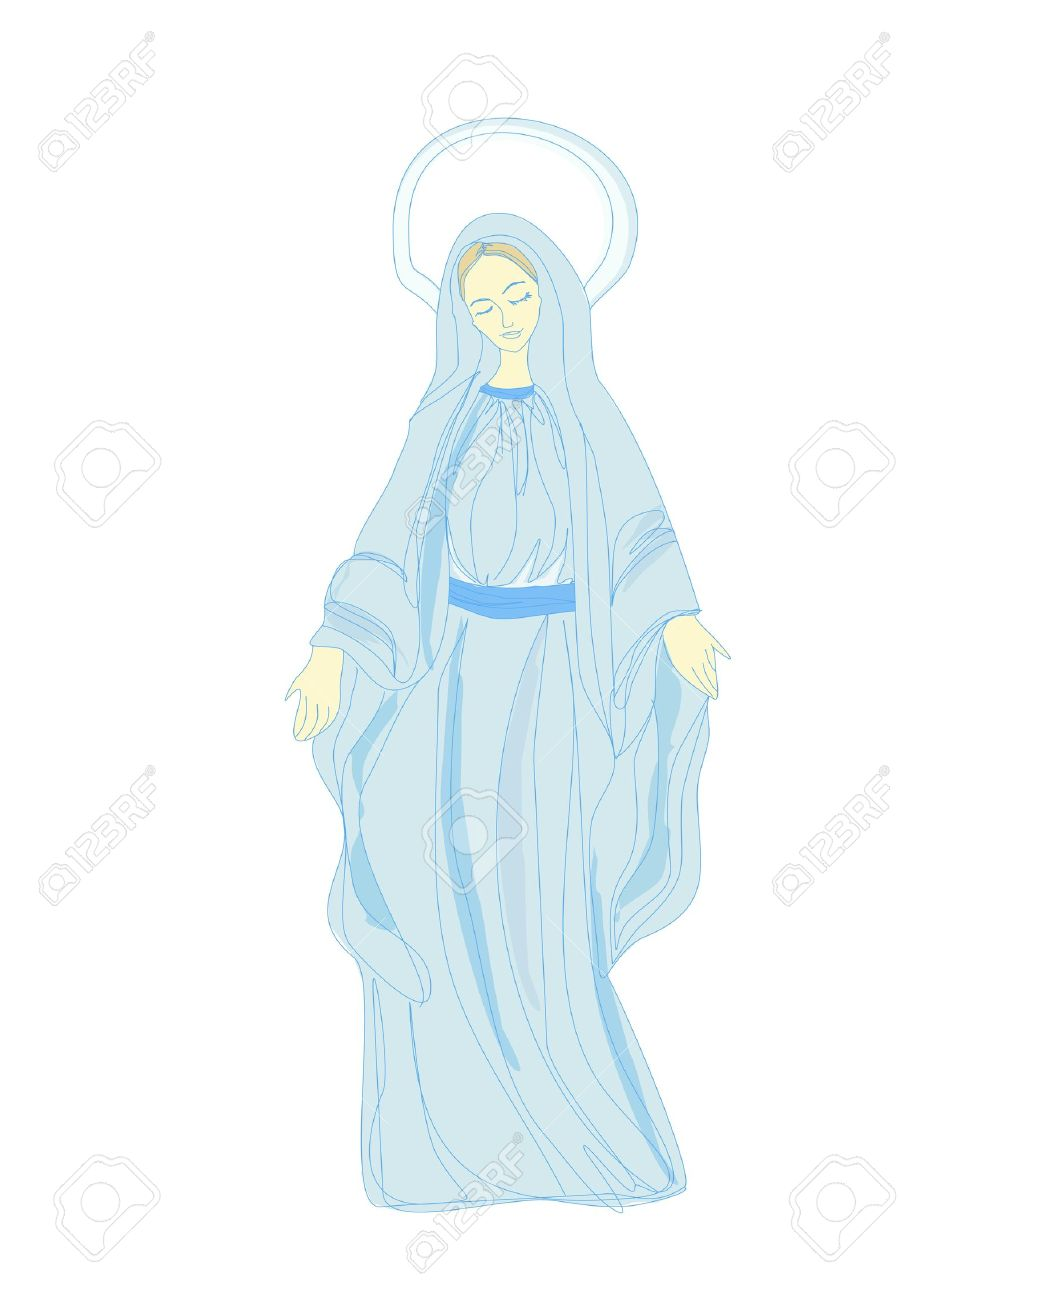 Blessed Mother Cliparts, Stock Vector And Royalty Free Blessed ...